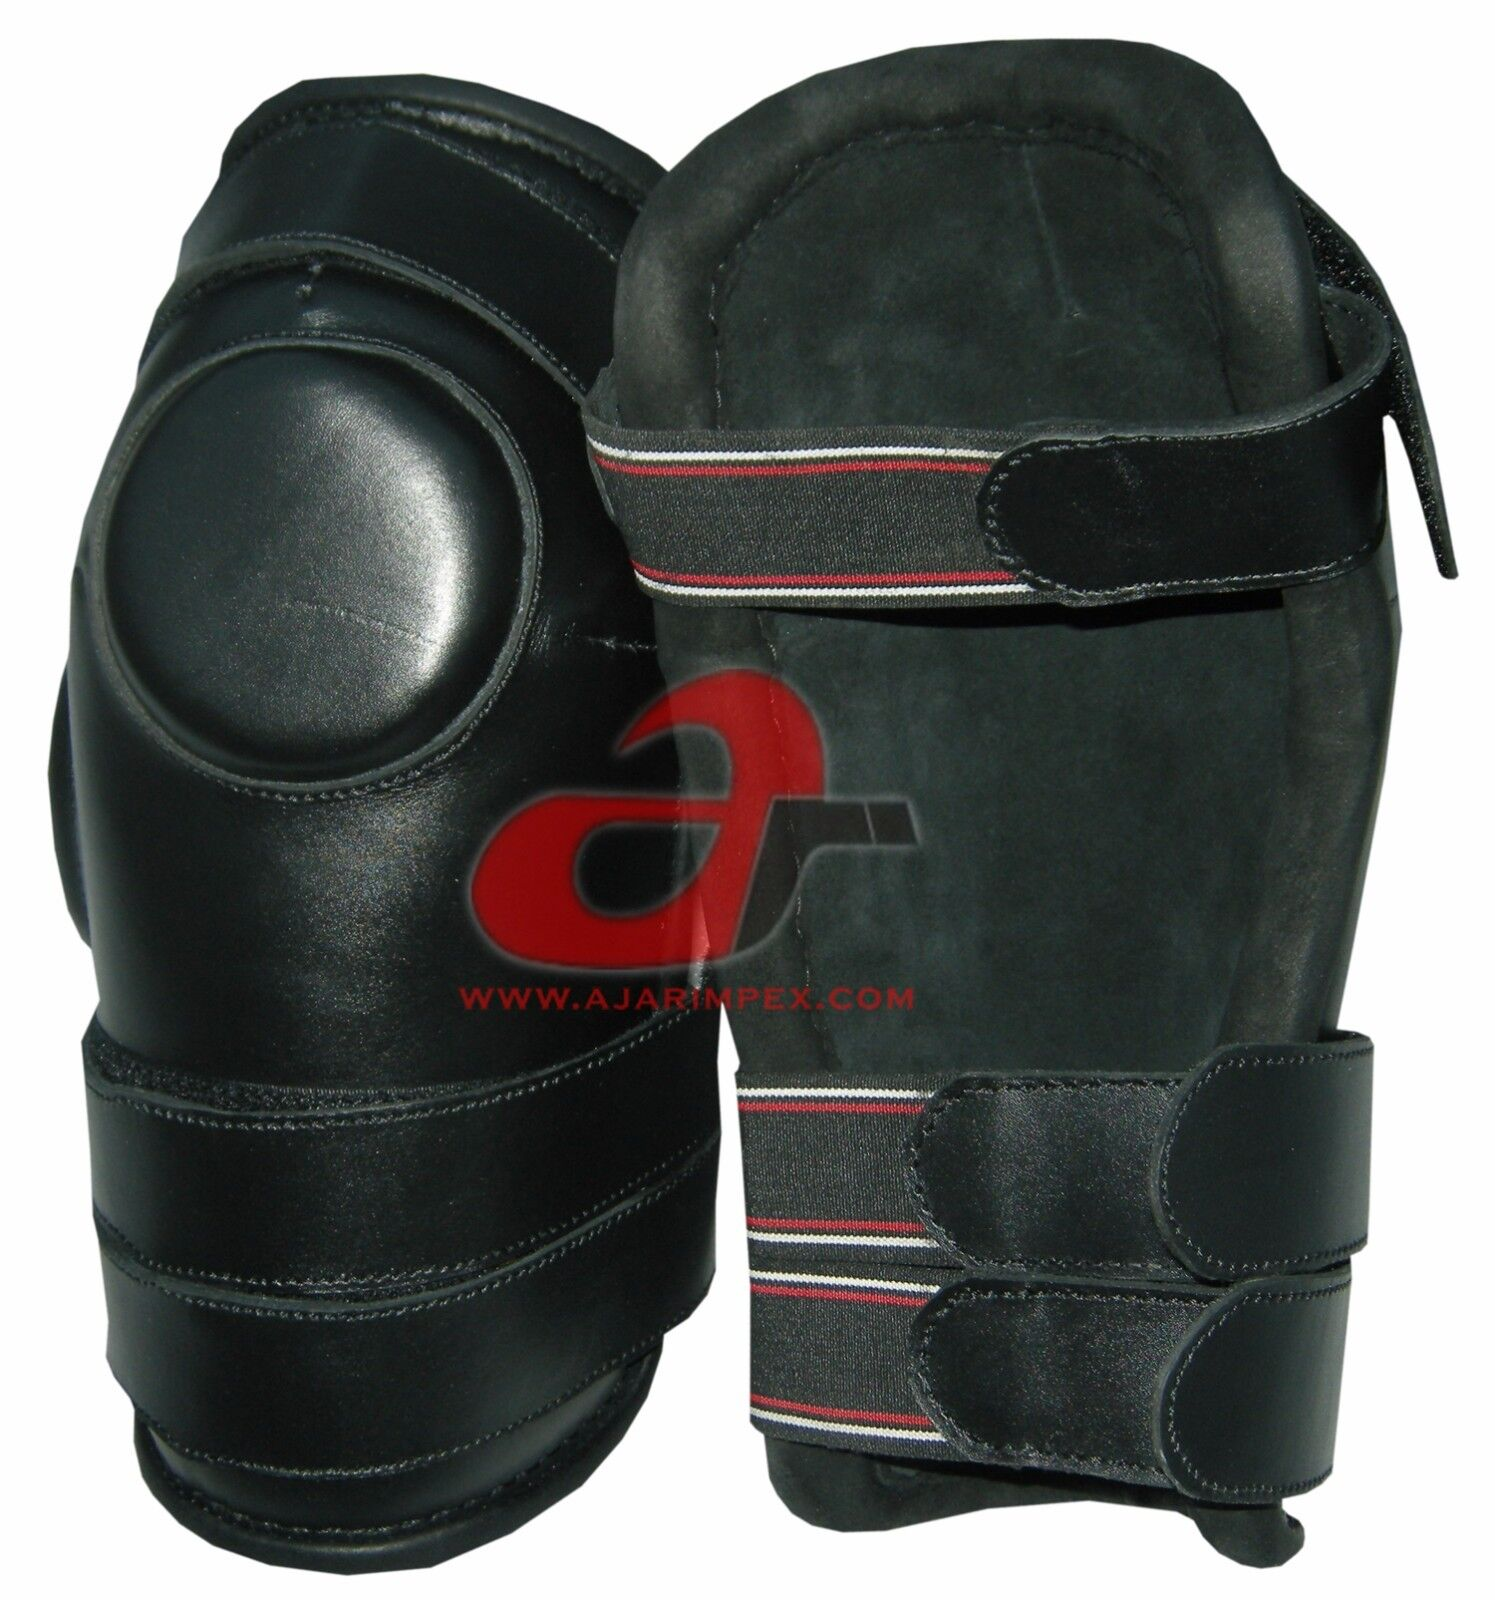 3 Strap Polo Knee & Ridding Knee Polo Guards-Leder and Padded 100% Real Leder- d65b73